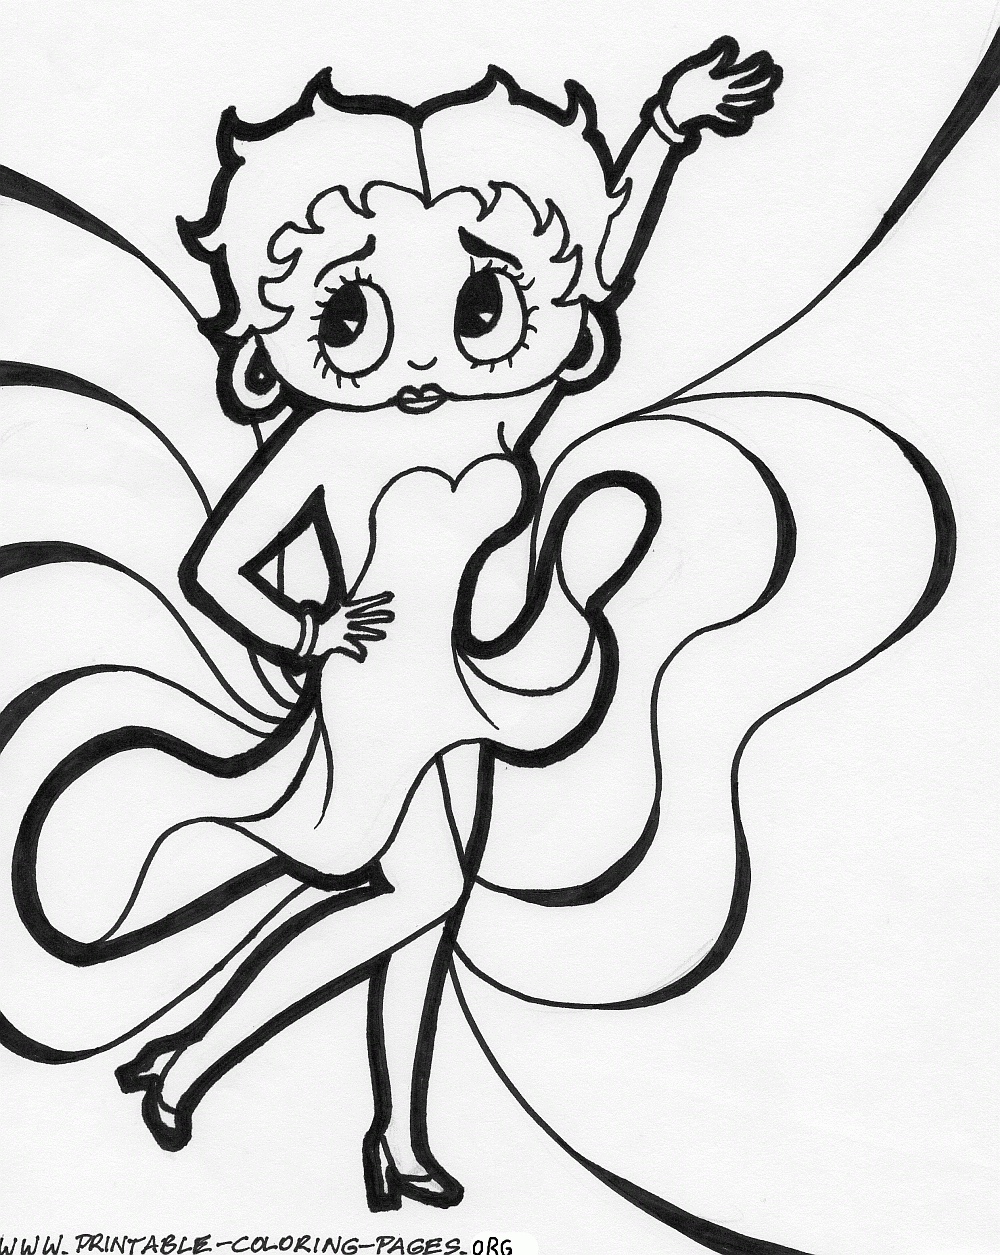 Coloring pages betty boop - Betty Boop Coloring Page